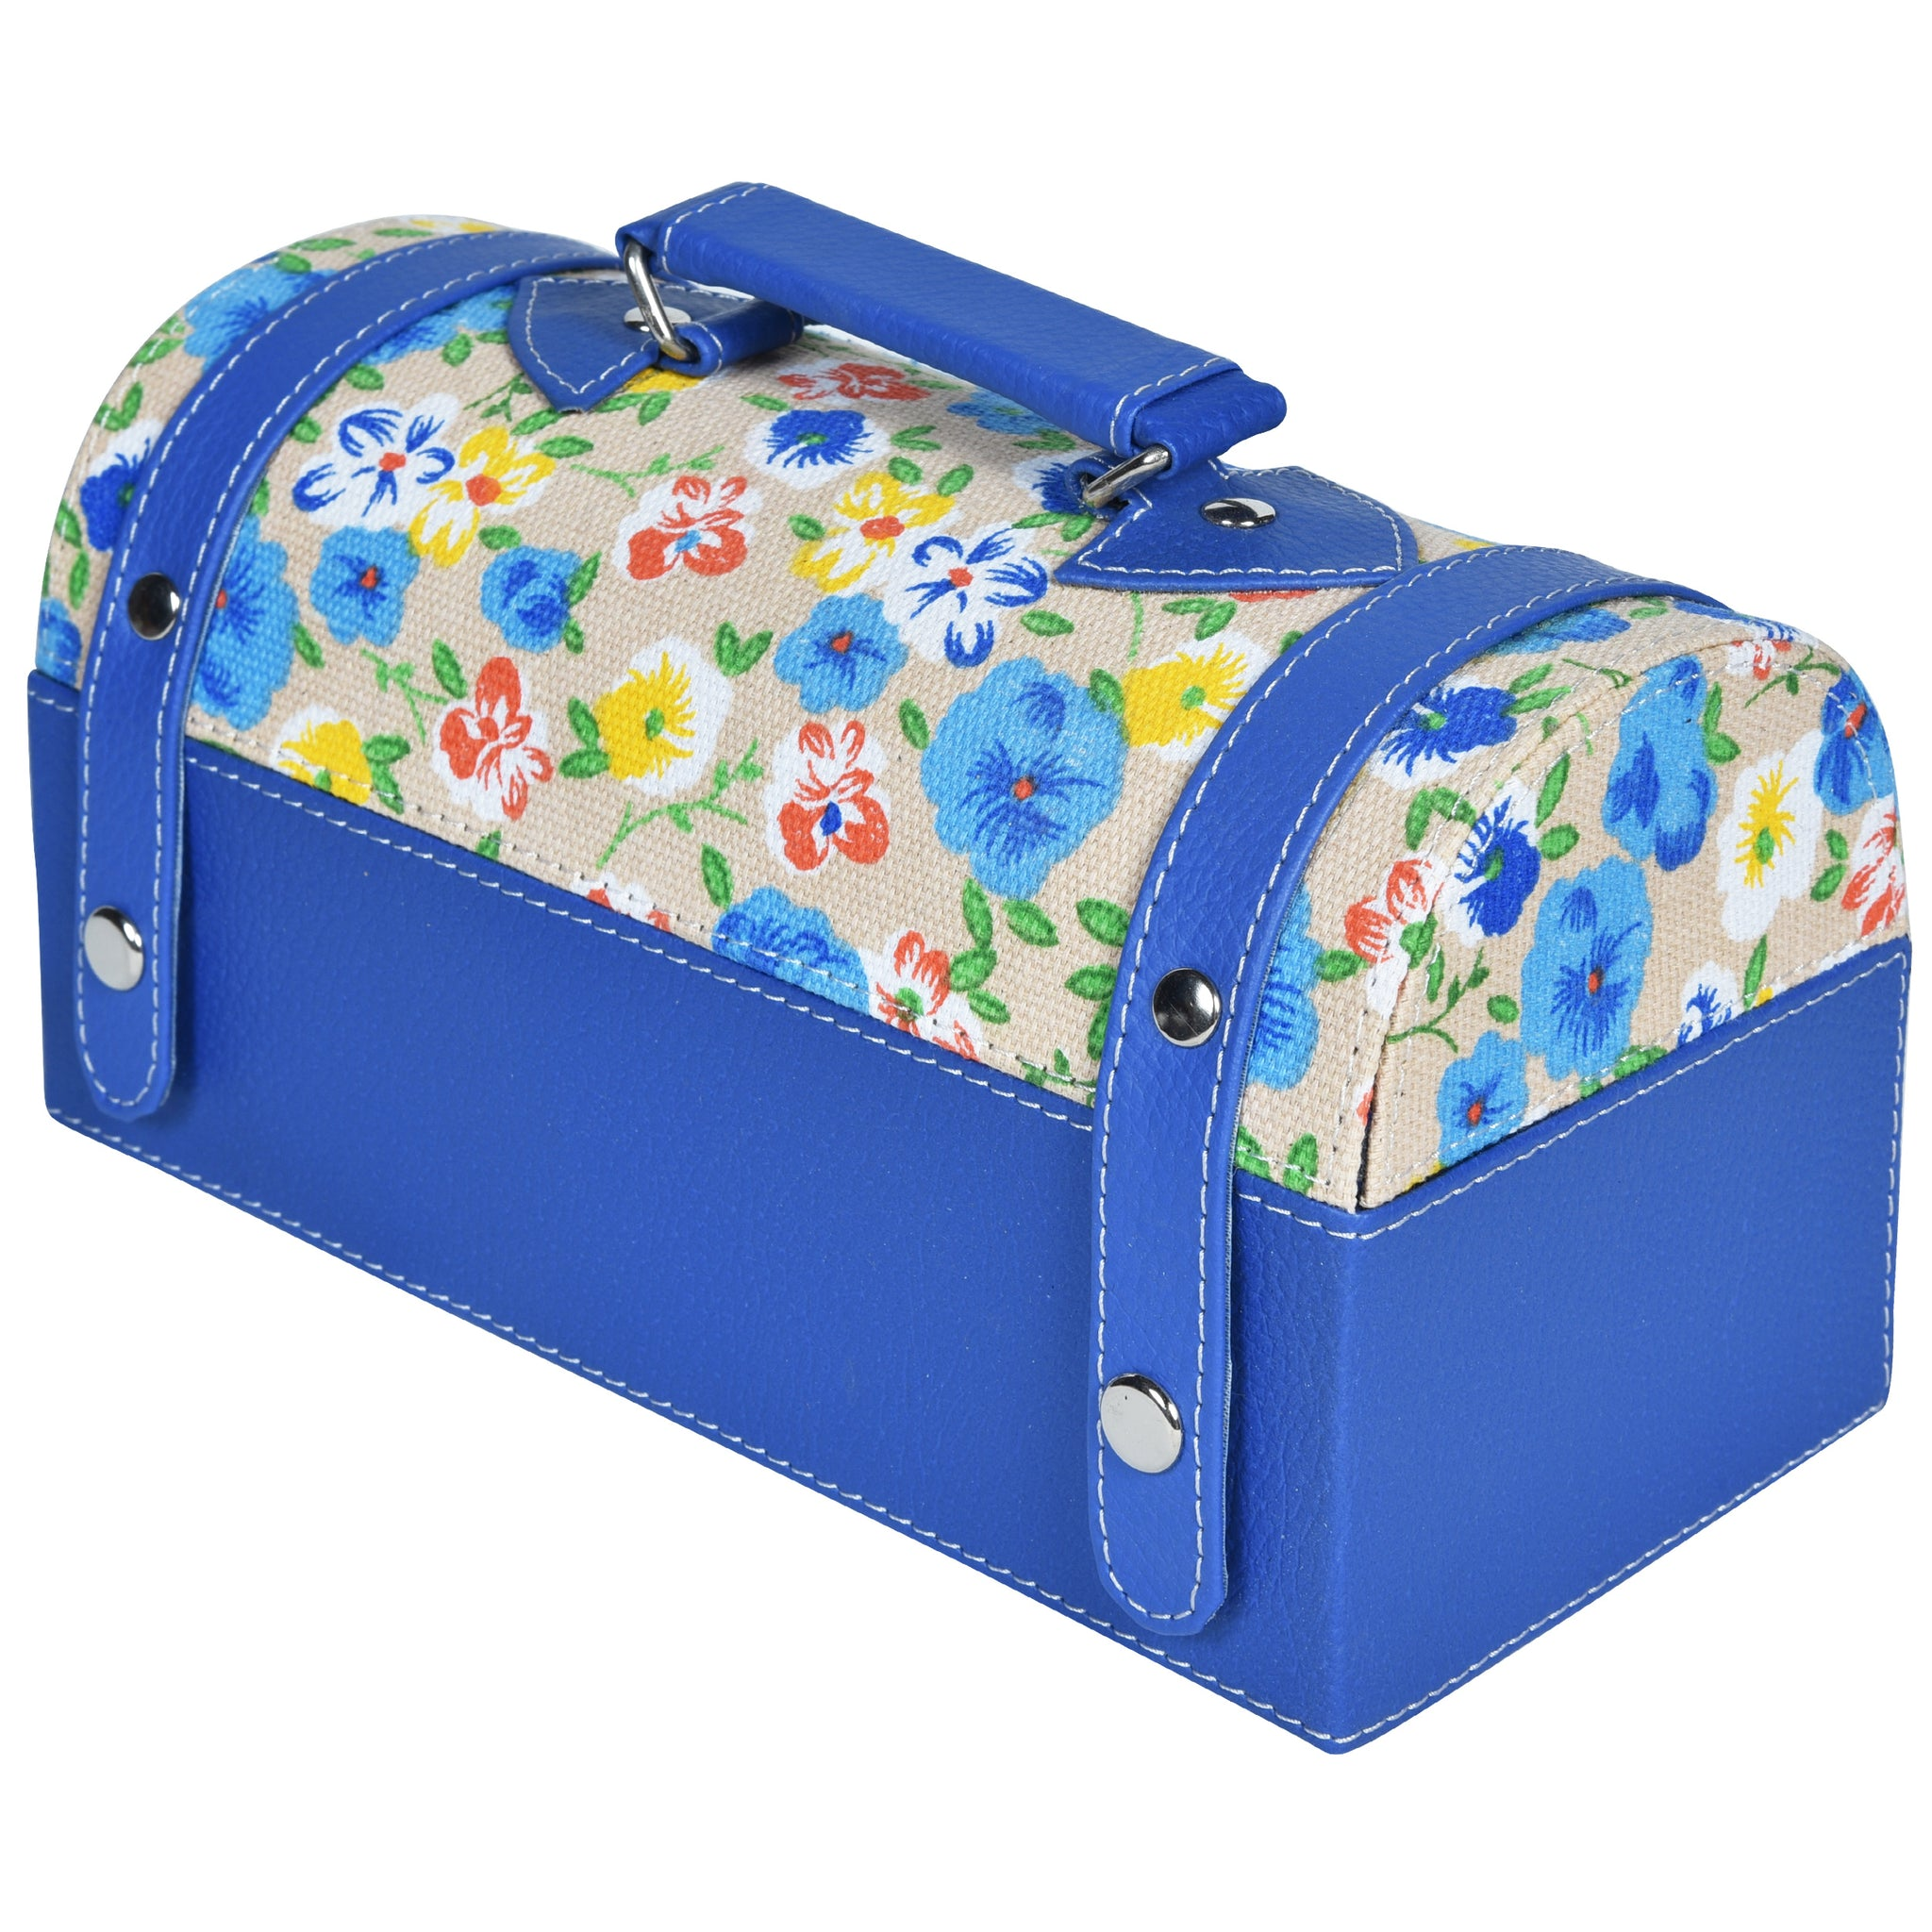 GLAM Travel Jewellery Vanity Box Trunk - Floral Blue White Case